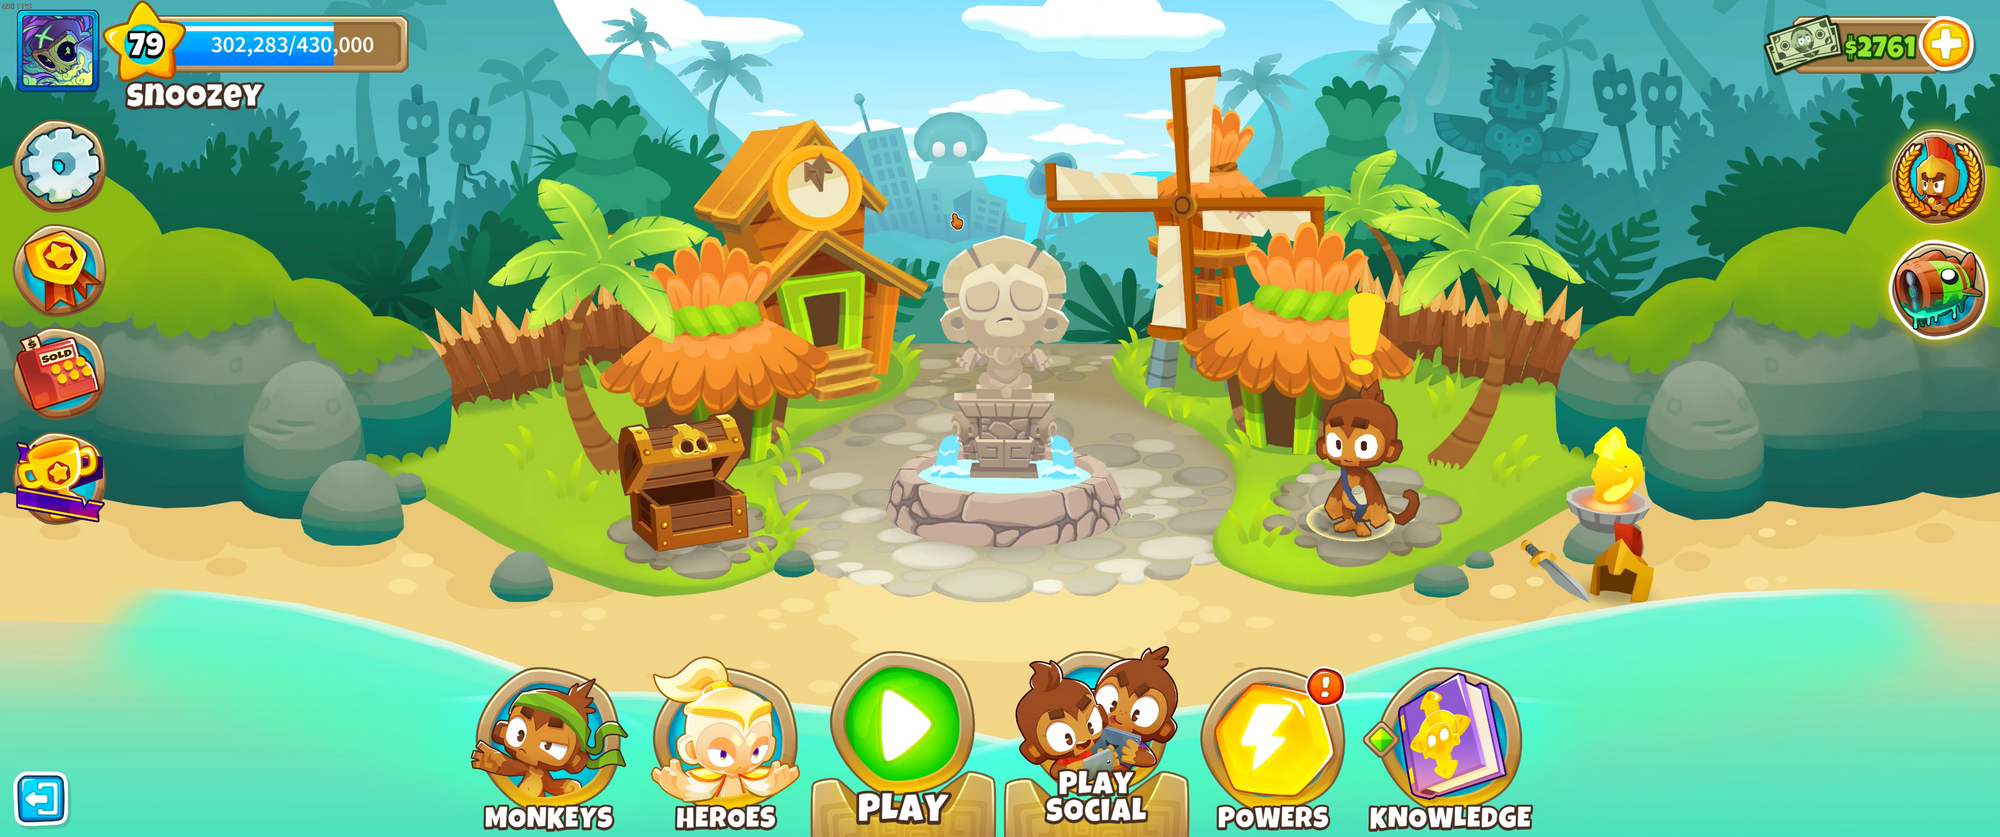 Bloons TD6: The Review